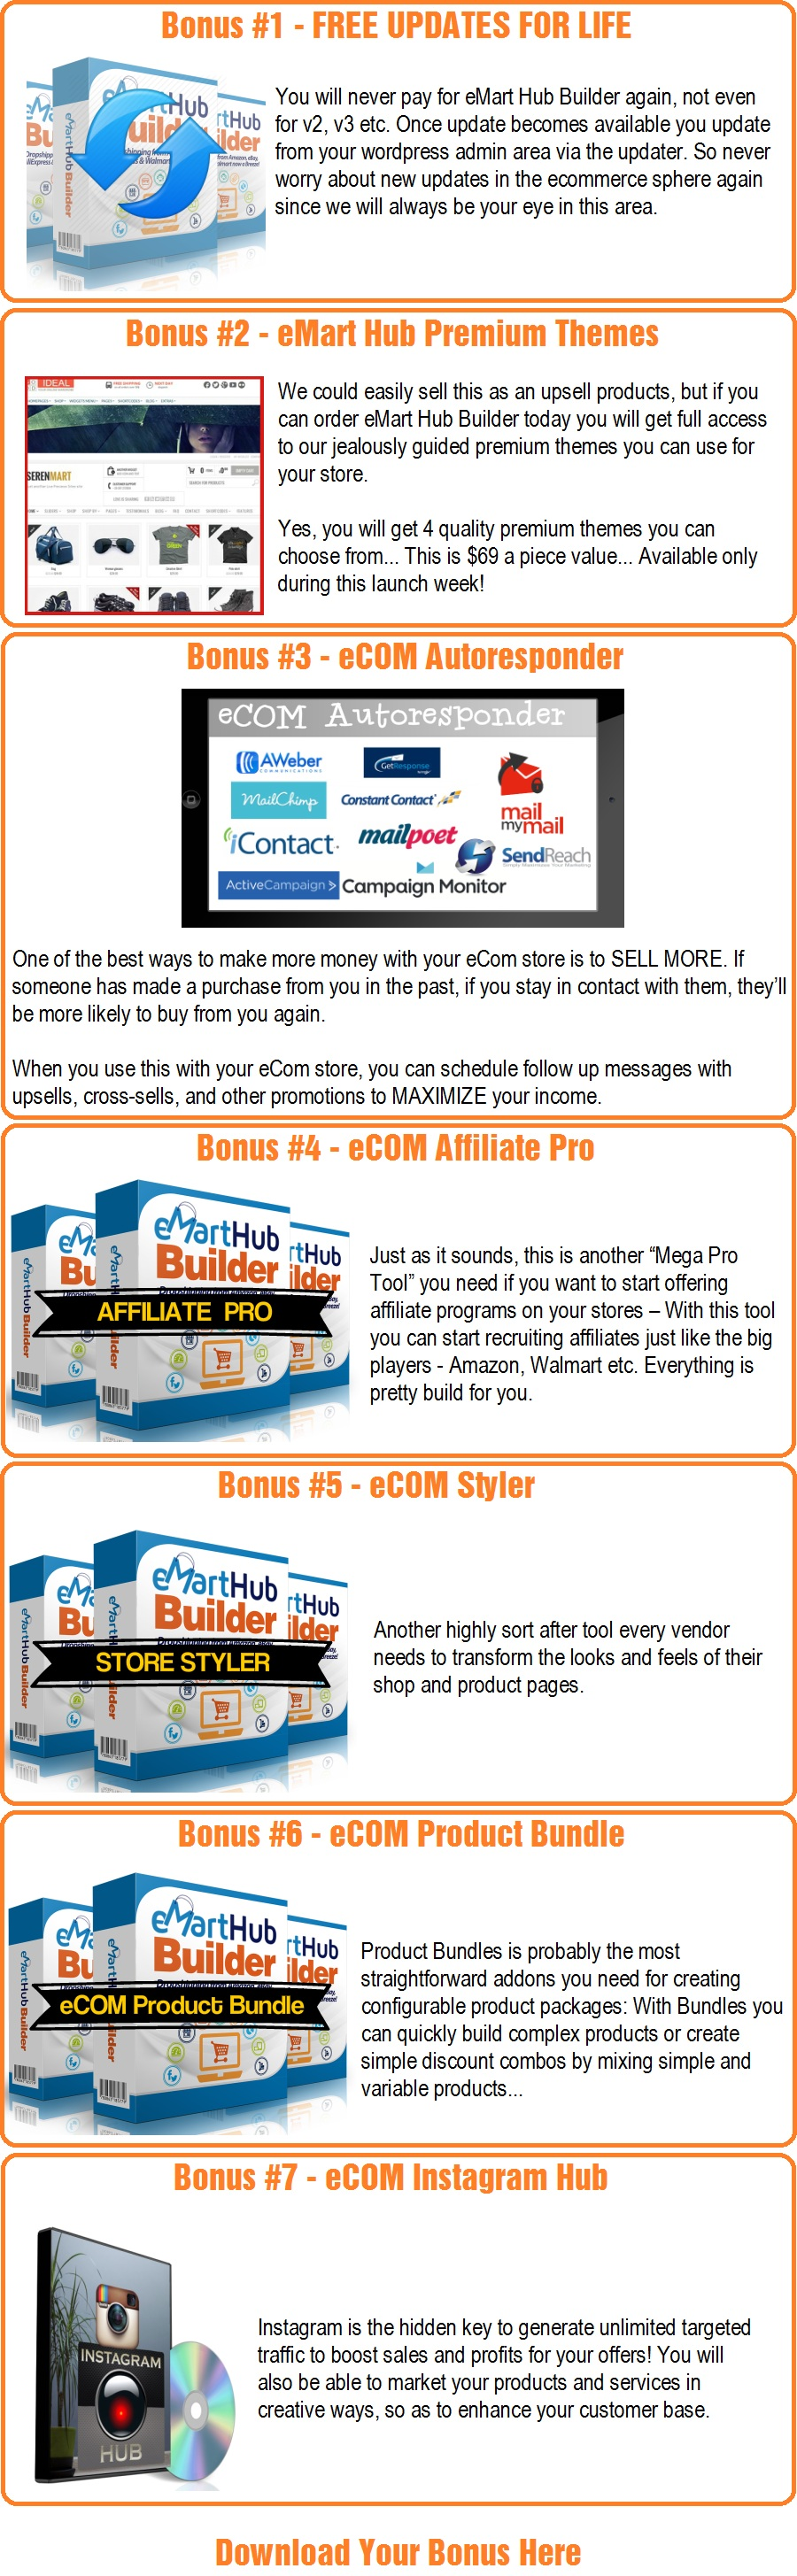 emart hub builder review bonus does it really work this is emart hub builder bonus when you action on the emart hub builder review today